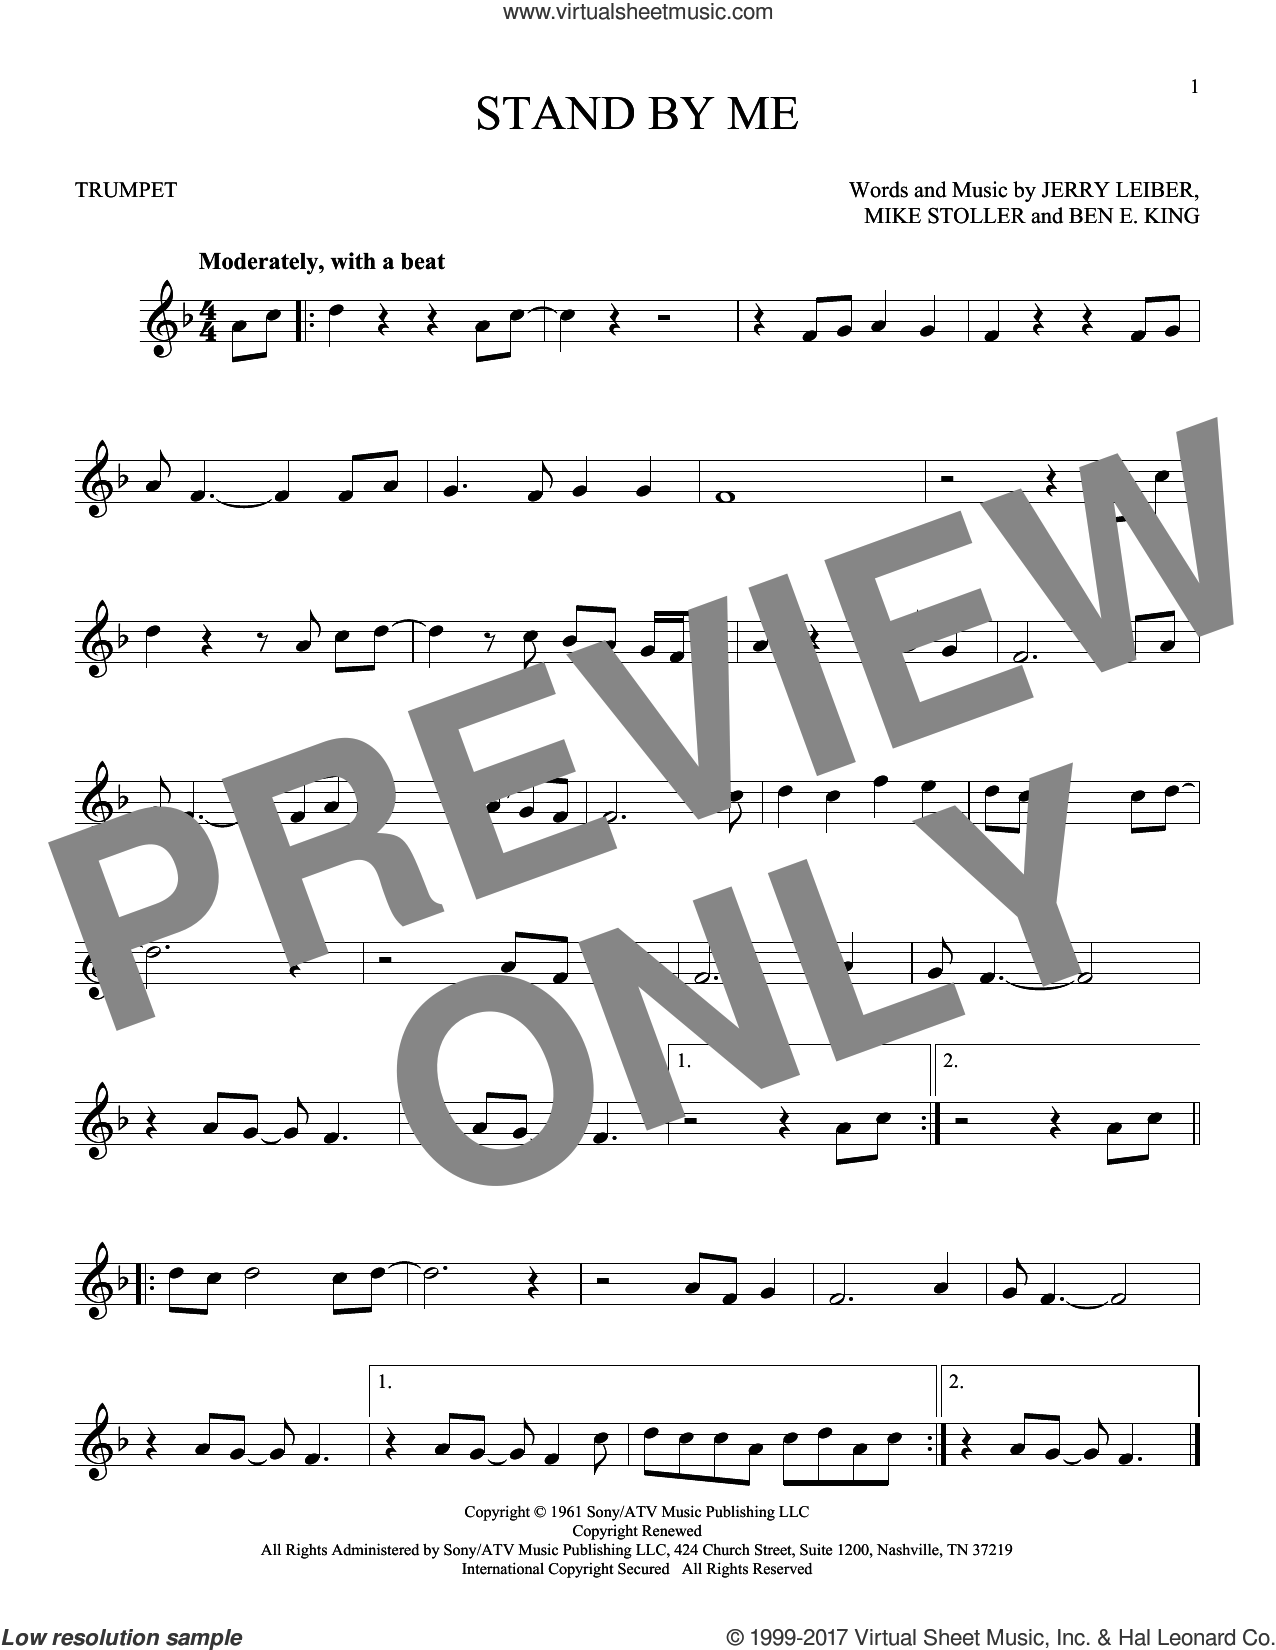 Stand By Me sheet music for trumpet solo by Ben E. King, Jerry Leiber and Mike Stoller, intermediate skill level